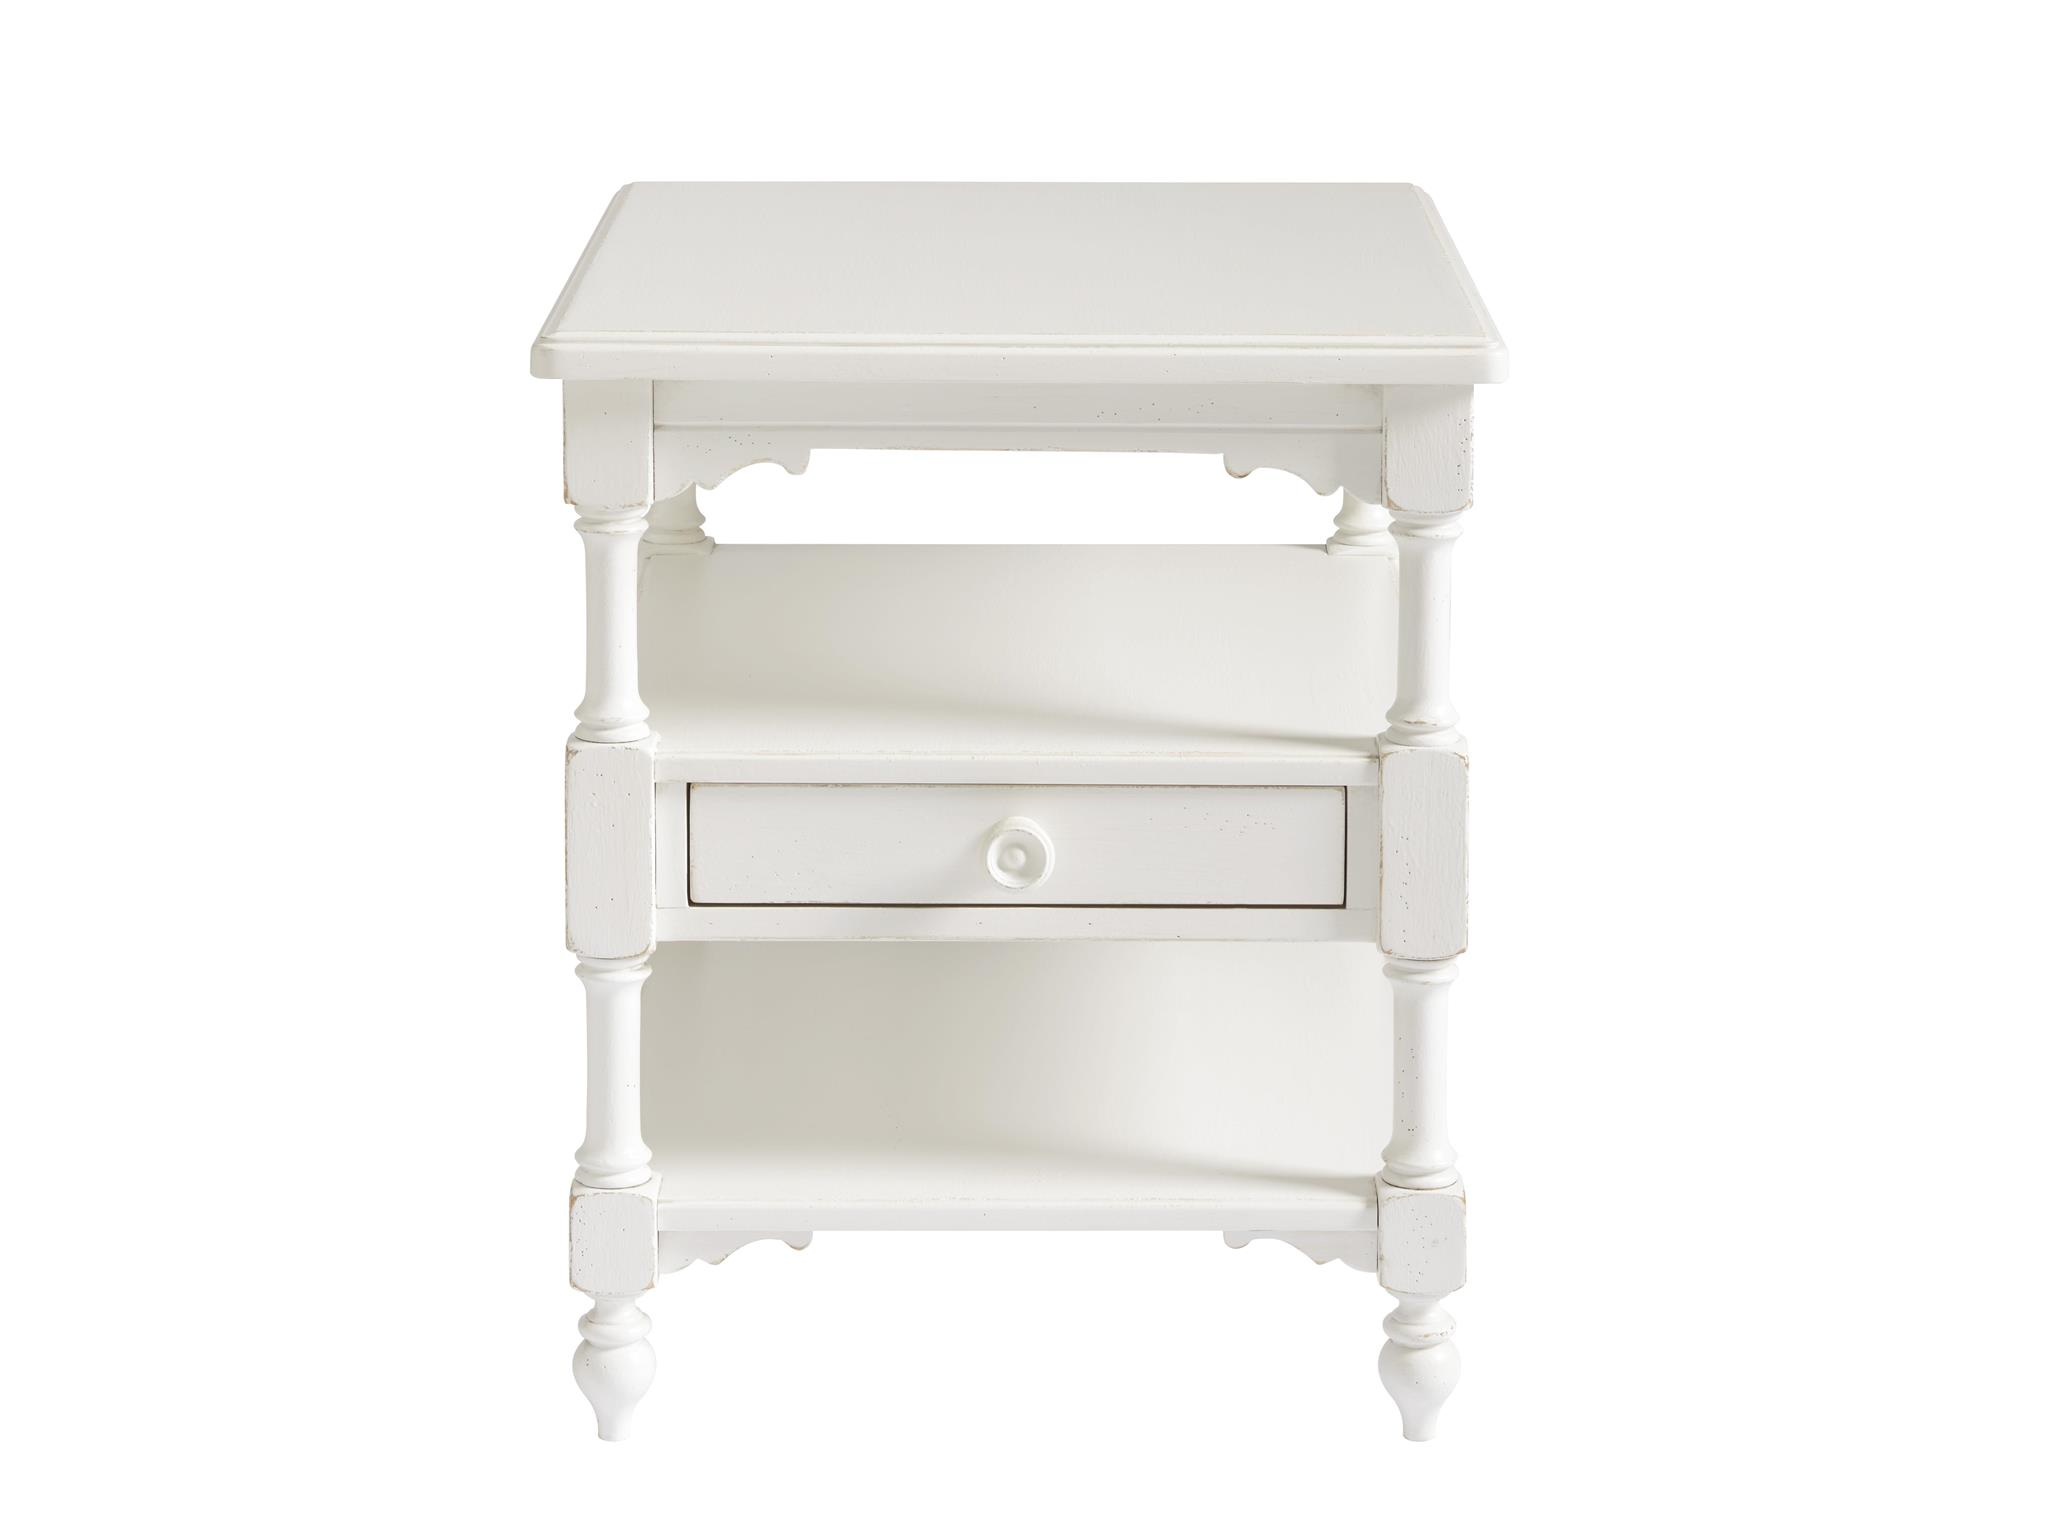 Universal Furniture Bungalow Paula Deen Home Bungalow End Table